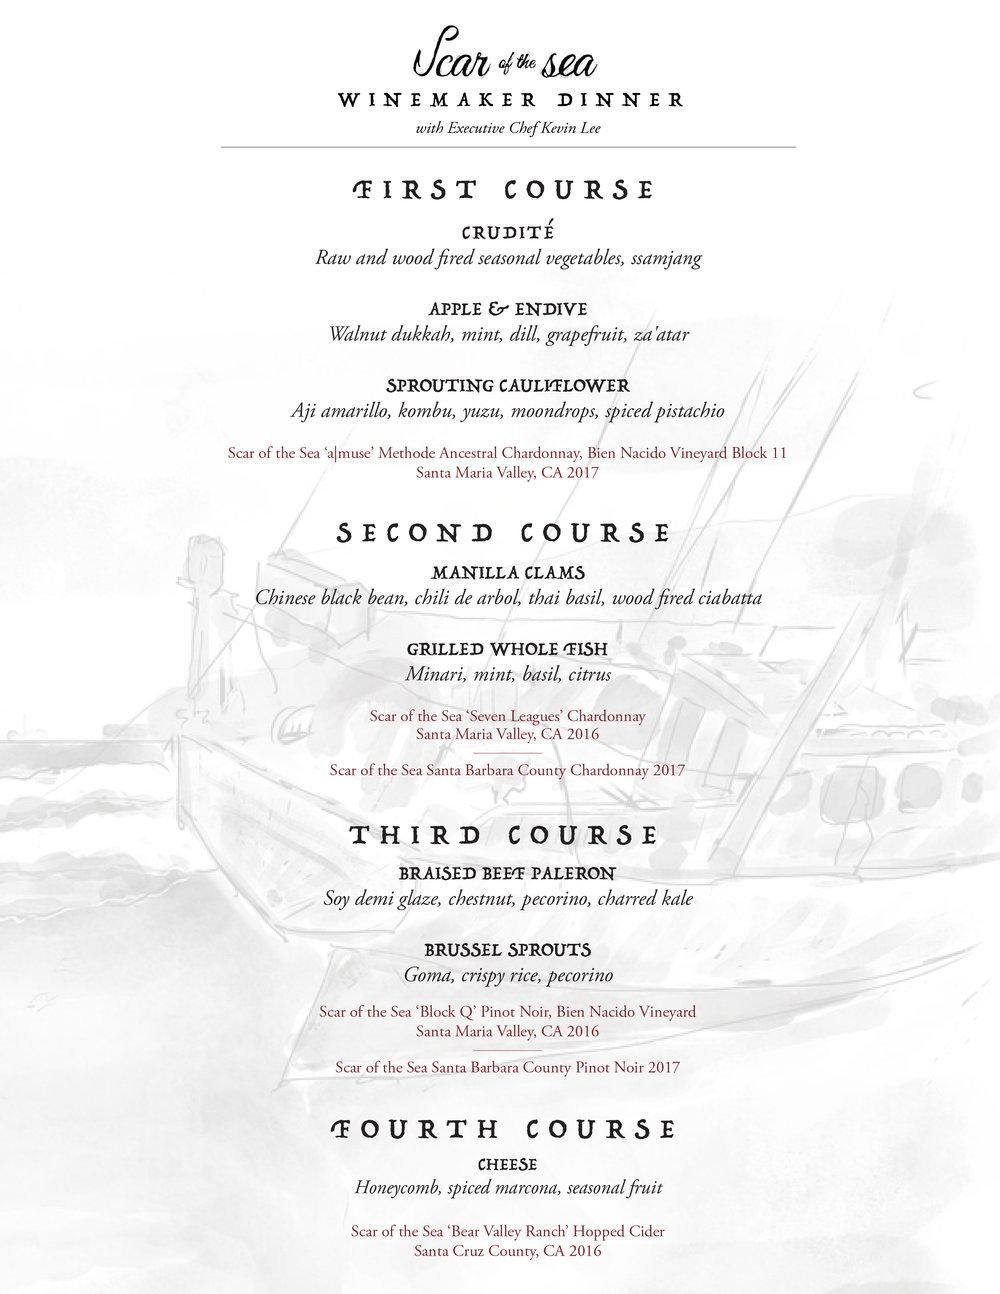 Scar of the Sea - On Thursday, November 15th, Makani will welcome owner and winemaker Mikey Giugni of Scar of the Sea for a special dinner showcasing a selection of wines and cider paired alongside a menu created by Makani Executive Chef Kevin Lee. Dinner guests will have the opportunity to engage in conversation and learn firsthand about the project and his winemaking approach.Michael Brughelli and Mikey Giugni met while Mikey was in his final years of college at Cal Poly.They became friends based on their shared interest and fascination of wine and the ocean. Scar of the Sea is producing and focusing on wines and ciders made from vineyards and orchards within the Central Coast of California. All are influenced by the sea, with maritime soils and climates. They produce wine and cider that express the terroir of the coastline they call home. The wines are meant to show vintage, nuance, elegance, depth and charm and are made with minimal intervention.This is the first dinner of the ongoing monthly producer series hosted by Makani Wine Director, Kyley Jacoby. These dinners came from a deep passion for wines produced in the states, the vineyards and the individuals who farm them.Details:Date/Time: Thursday, November 15th at 8:00PMPrice: Tickets are $120 inclusive of food, wine and service charge.Reservations: Space is limited-to purchase tickets follow this.BUY TICKETS